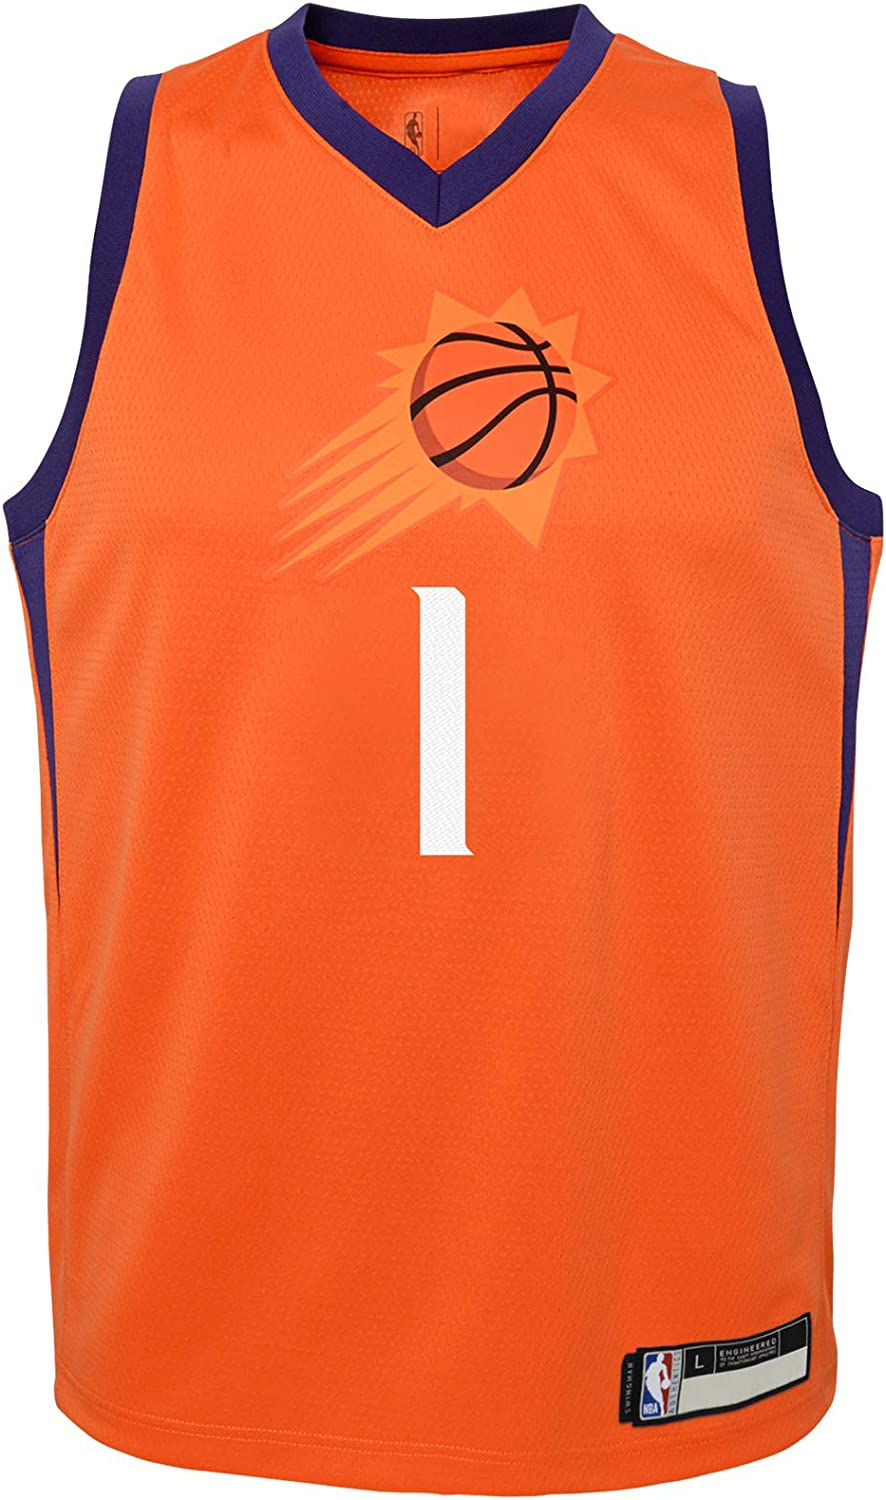 NBA Kids 4-7 Official Name and Number Replica Home Alternate Road Player Jersey